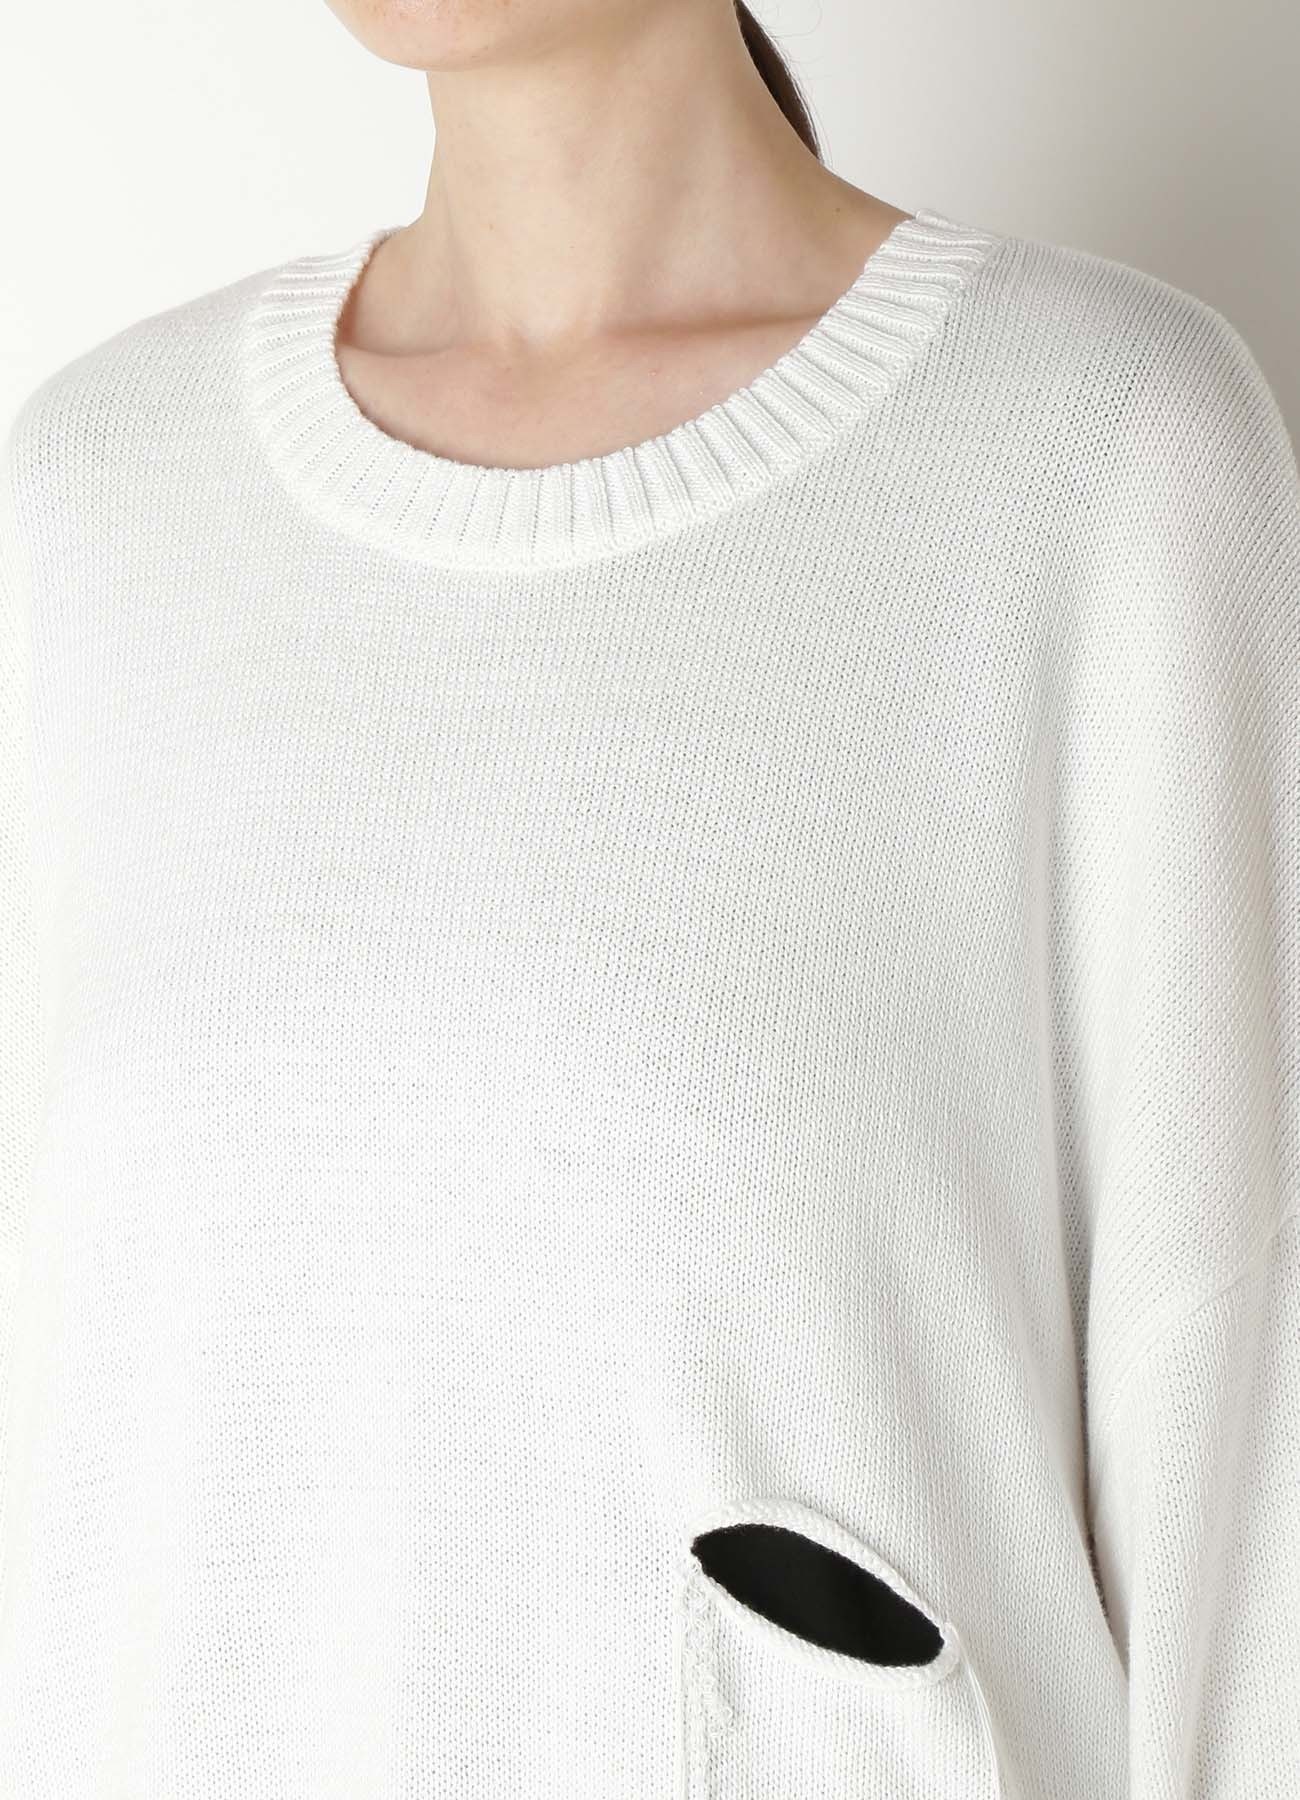 7G3P PS HOLE LONG SLEEVE HOLE KNIT